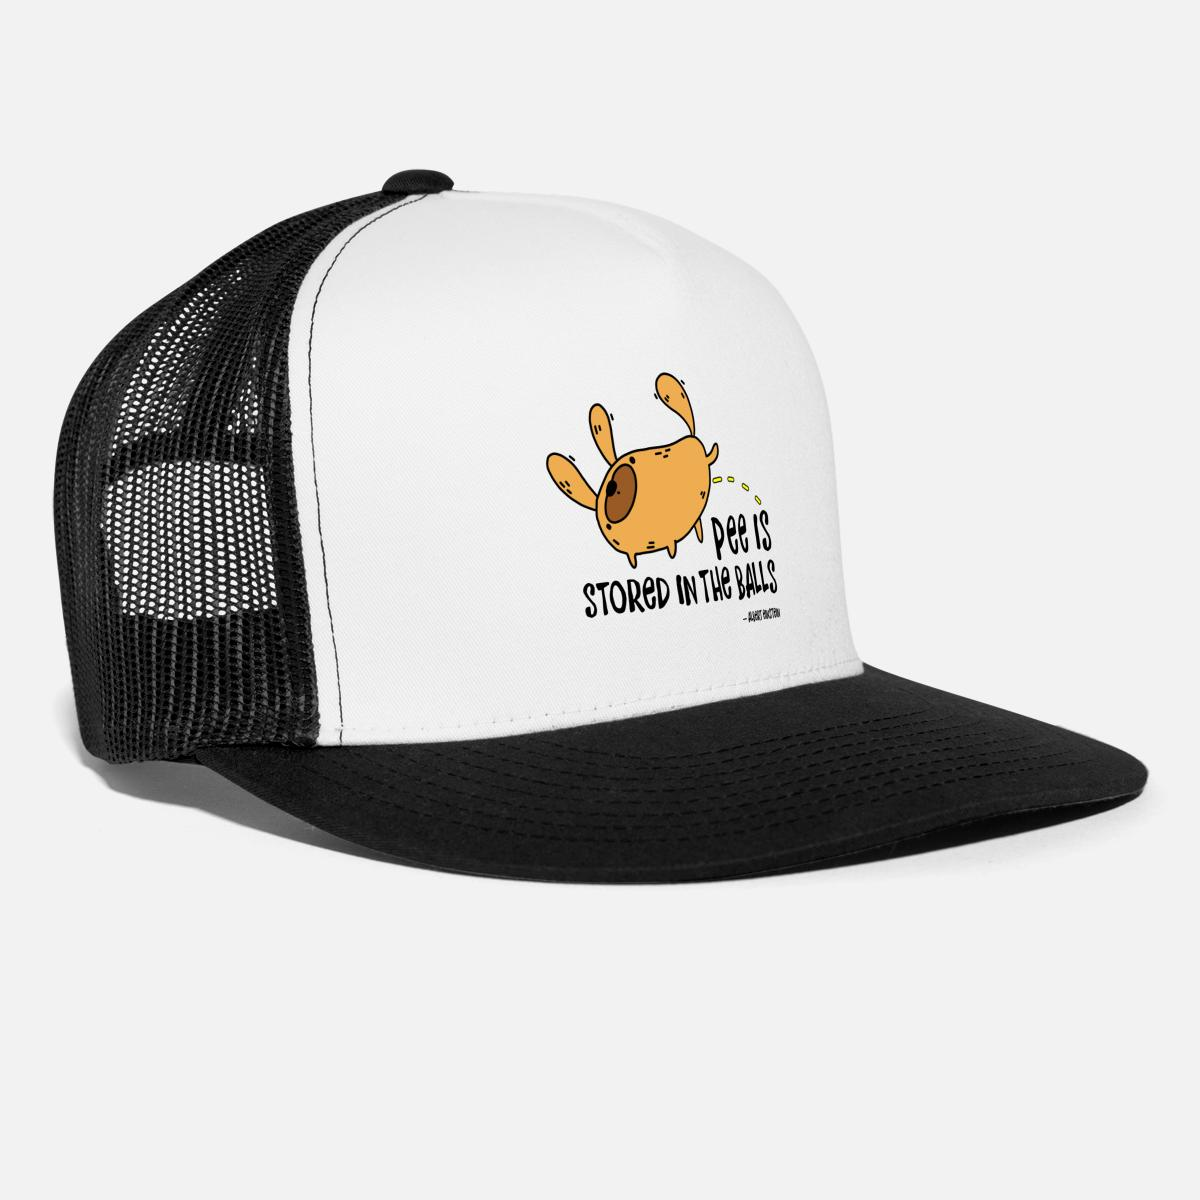 Pee is stored in the Balls. Funny urinating dog. Trucker Cap ... b5099f9131d3